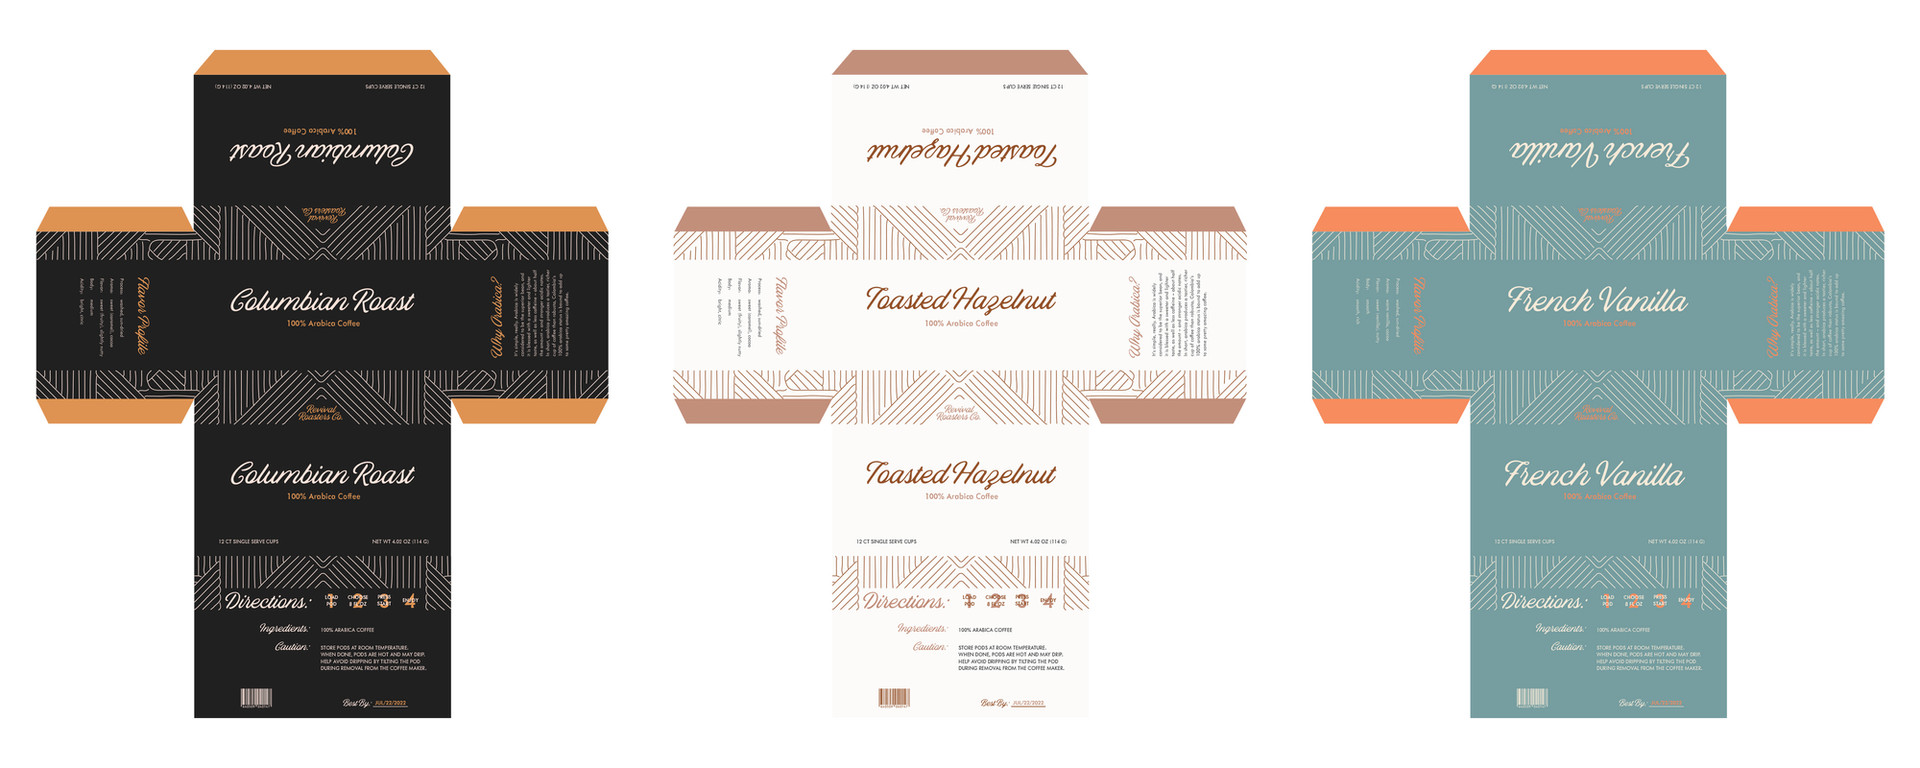 French Vanilla and Toasted Hazelnut Coffee Pod Flat Packaging